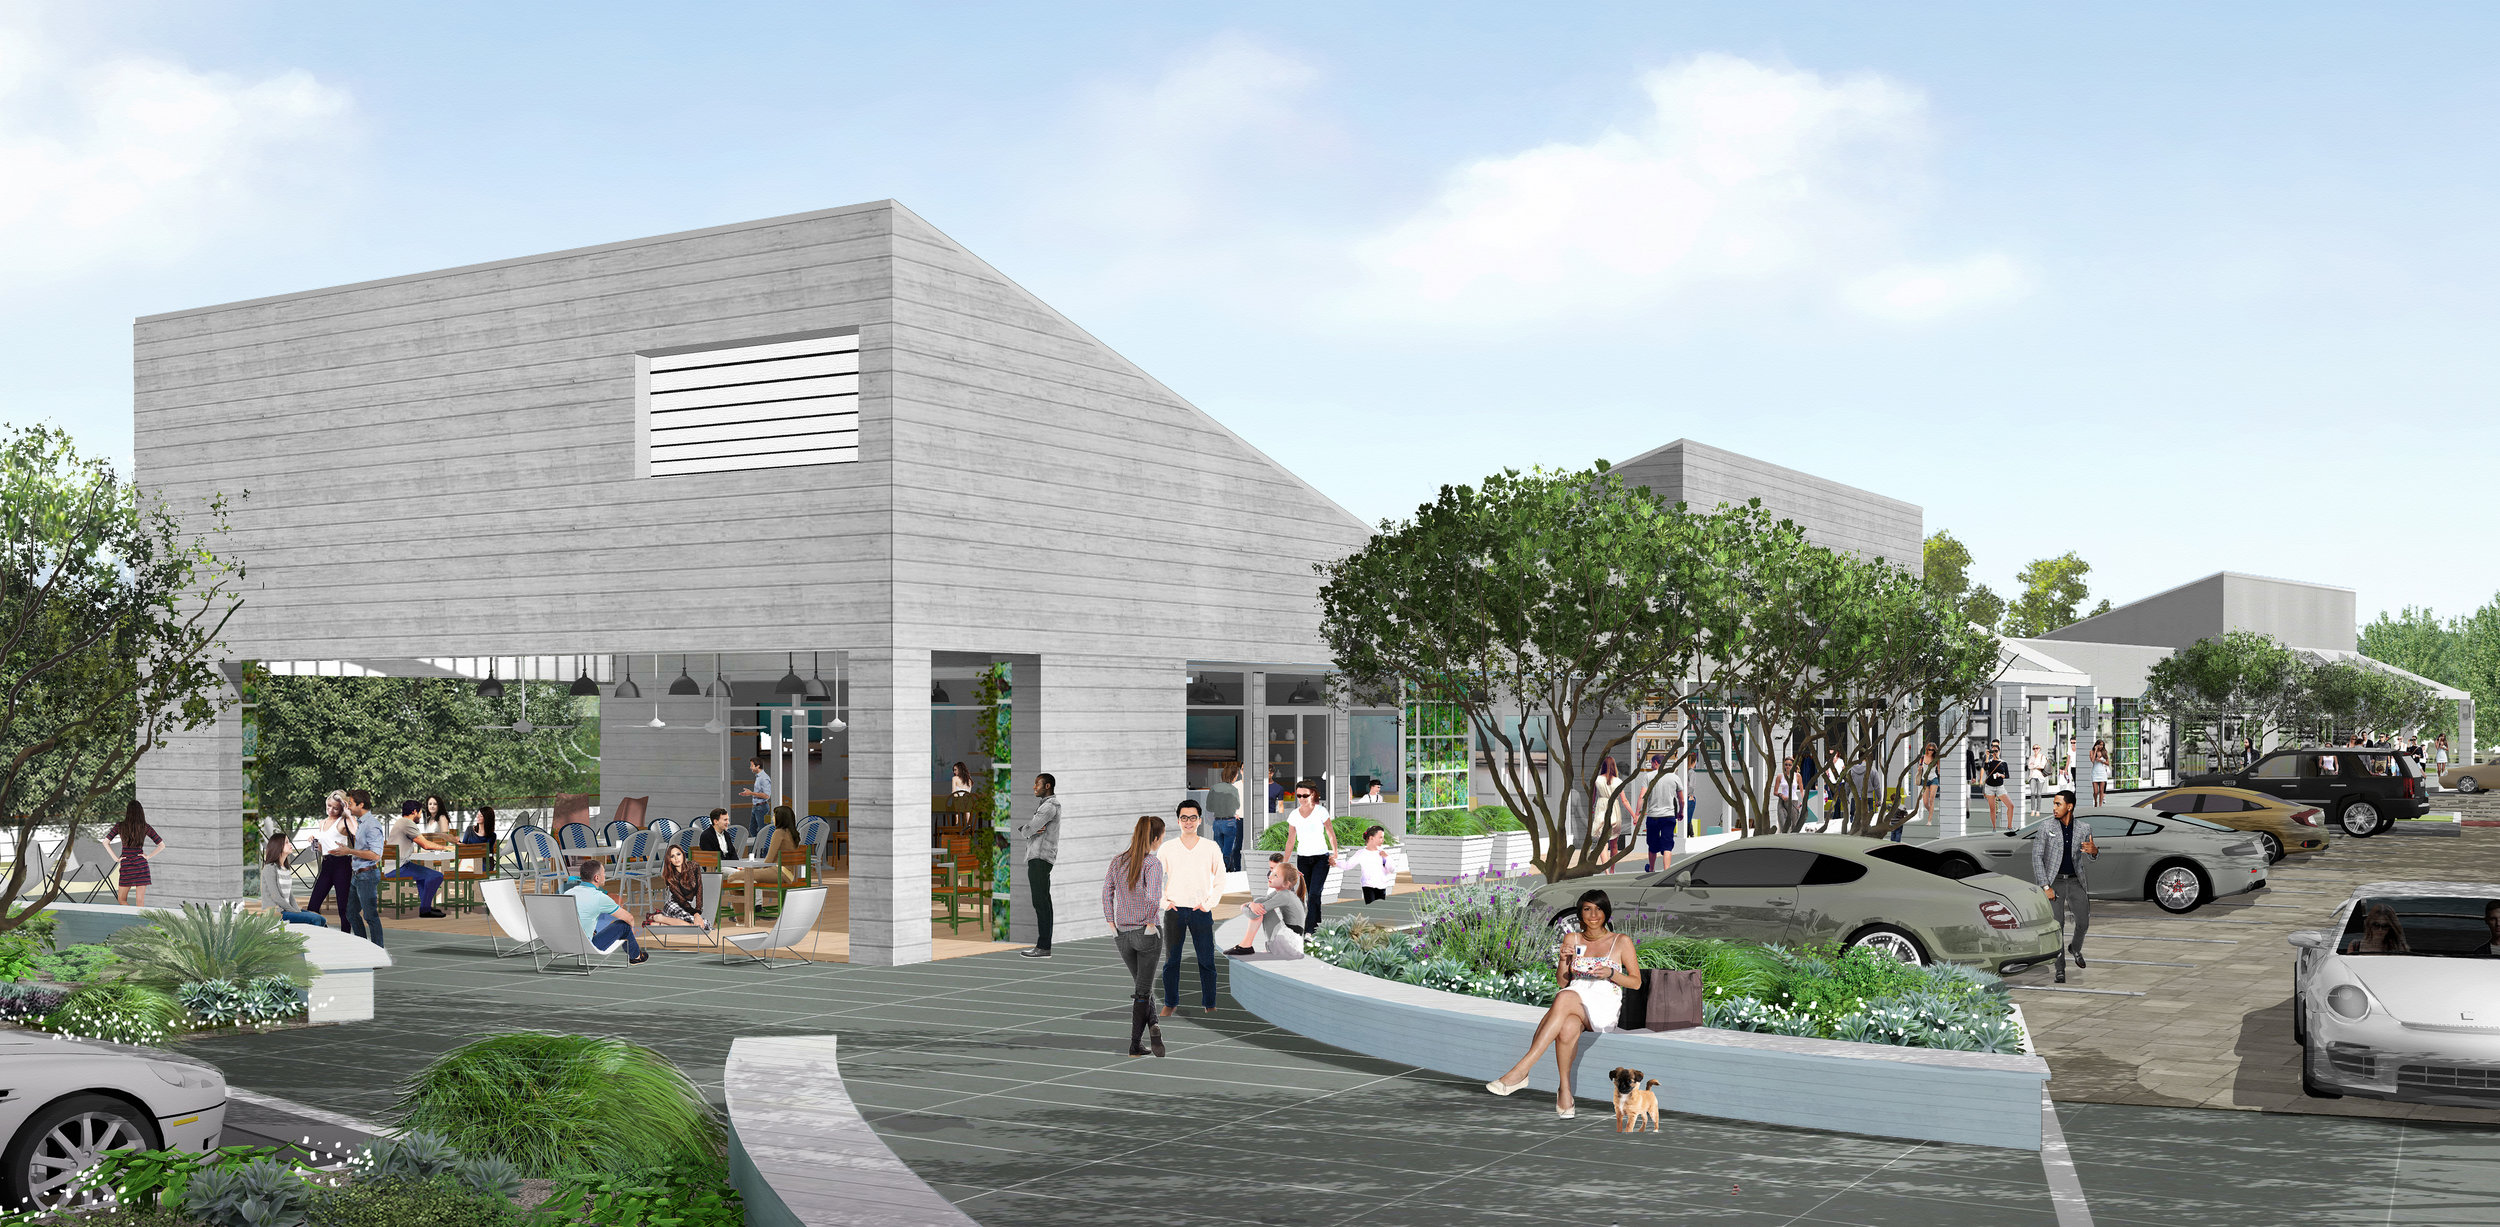 Steve Soboroff's latest venture, named The Park, will bring retail and dining options as well as a slew of community features to the Civic Center area when it opens in 2019.